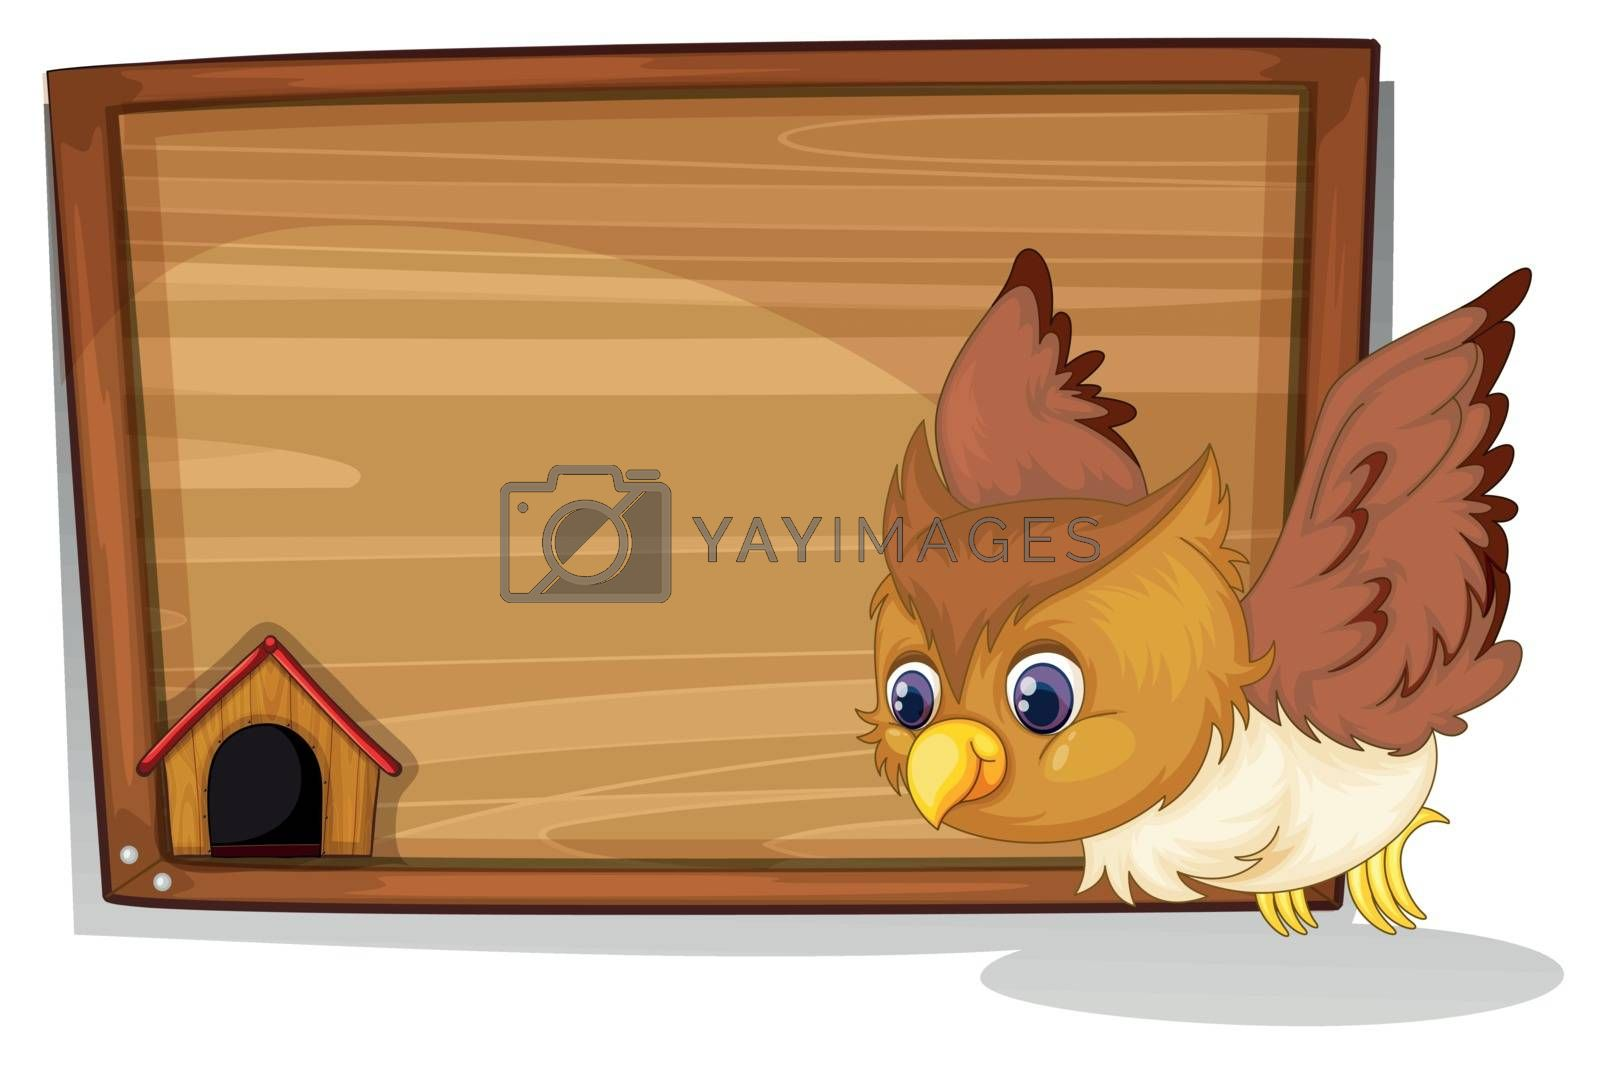 Illustration of an owl flying near the wooden board on a white background